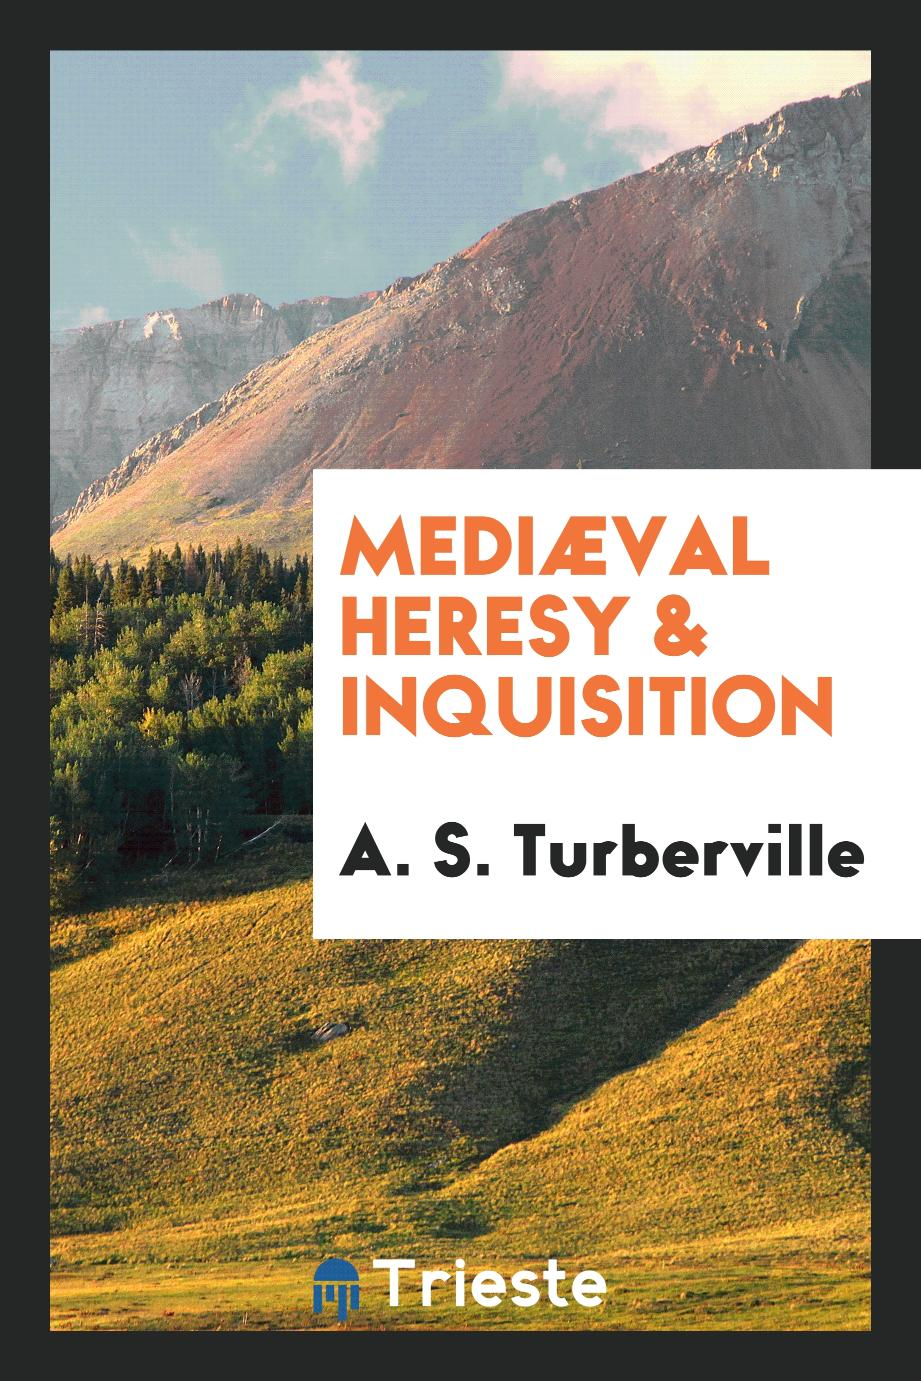 Mediæval heresy & inquisition